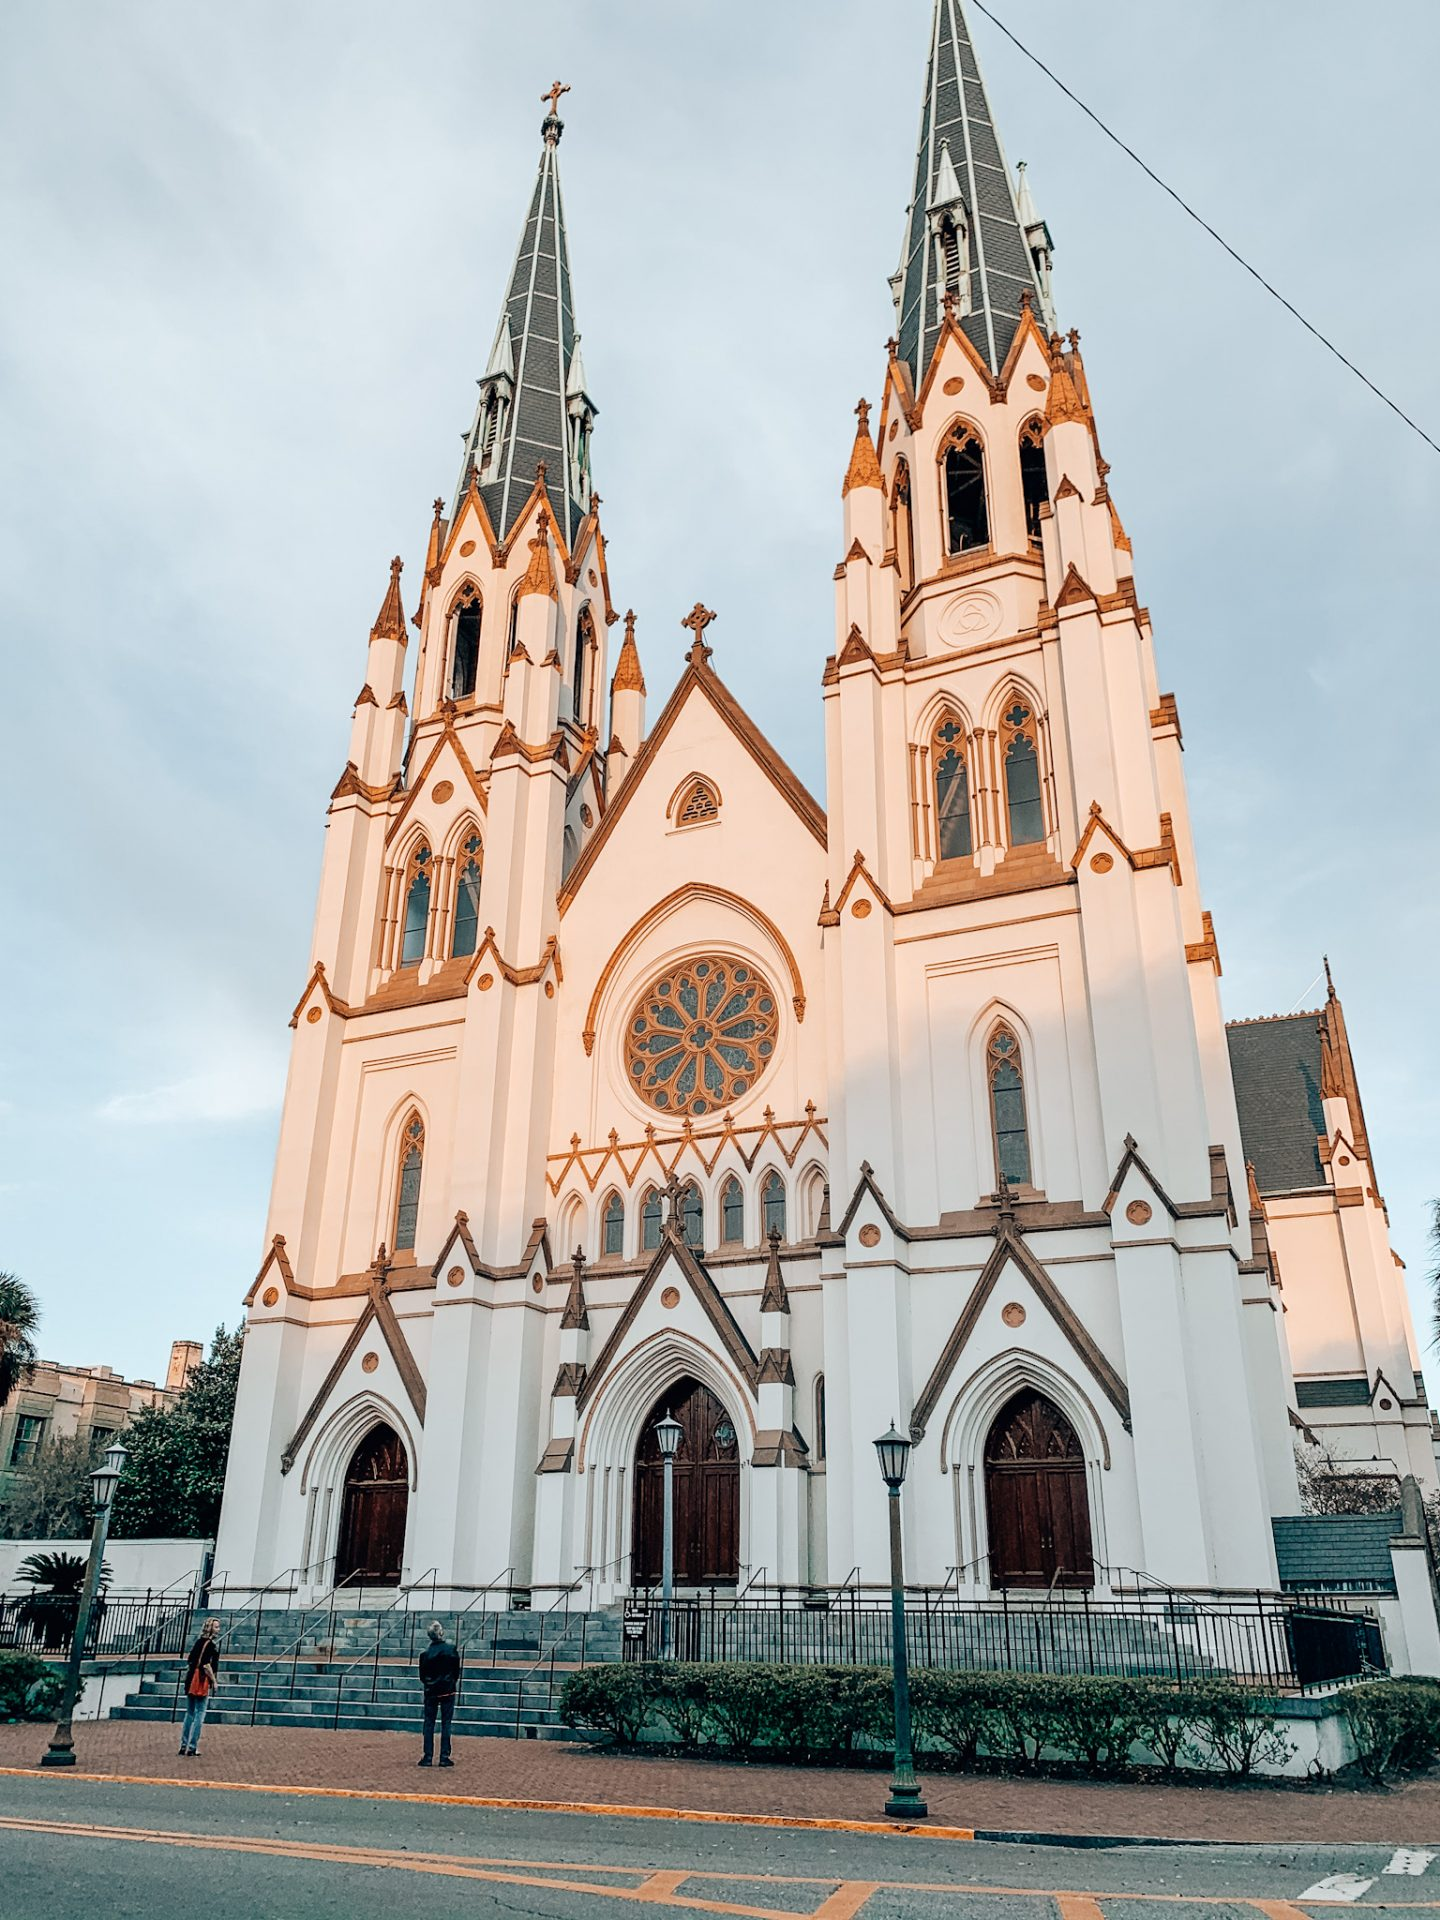 St. John's Church facade at golden hour in Savannah, Georgia